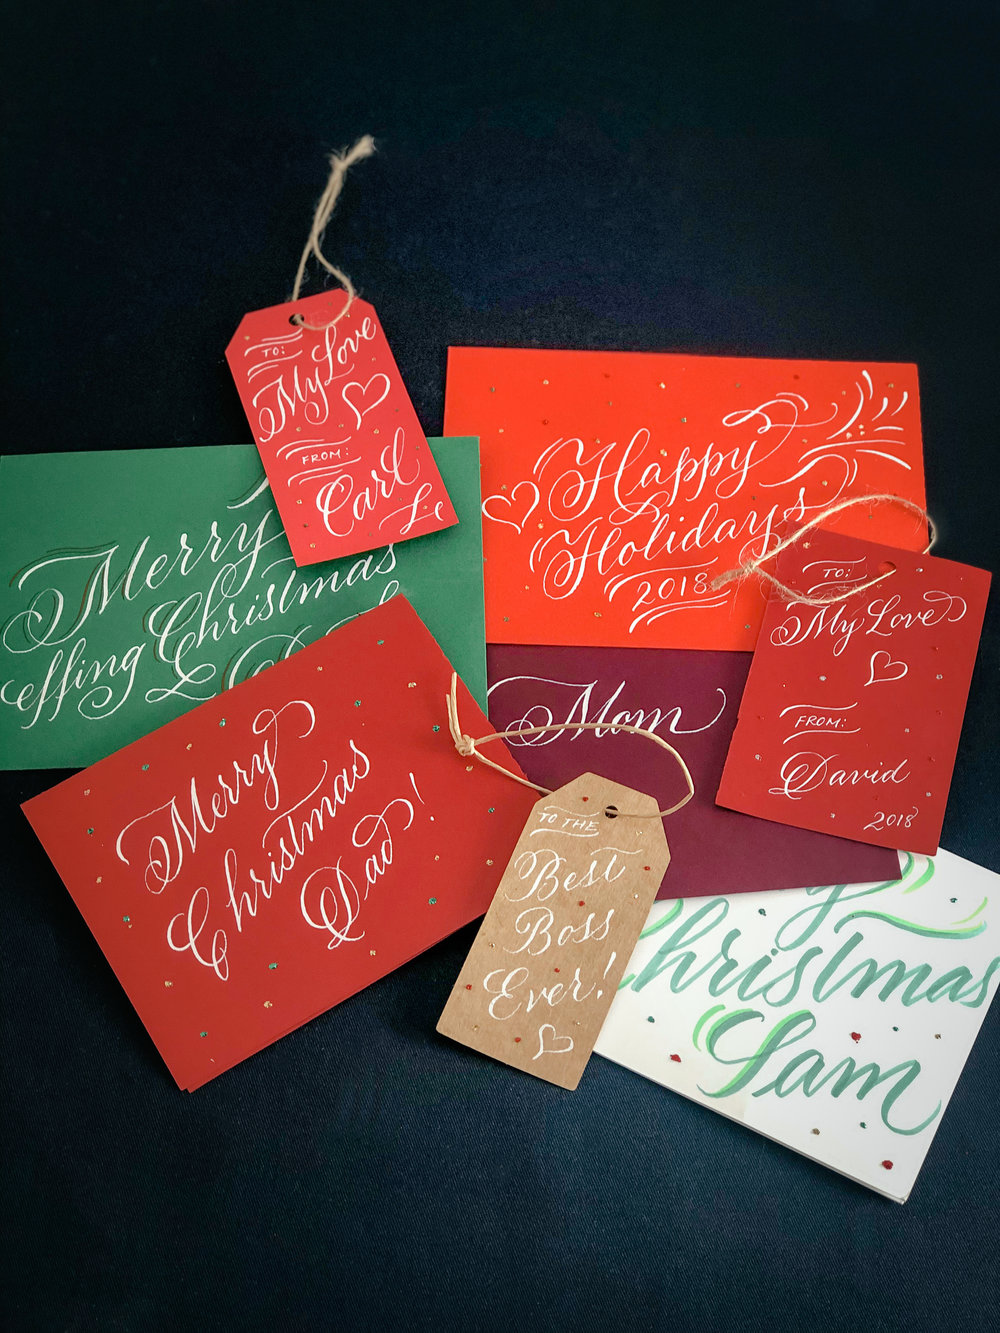 Christmas cards and holiday greetings in script calligraphy // by www.chavelli.com